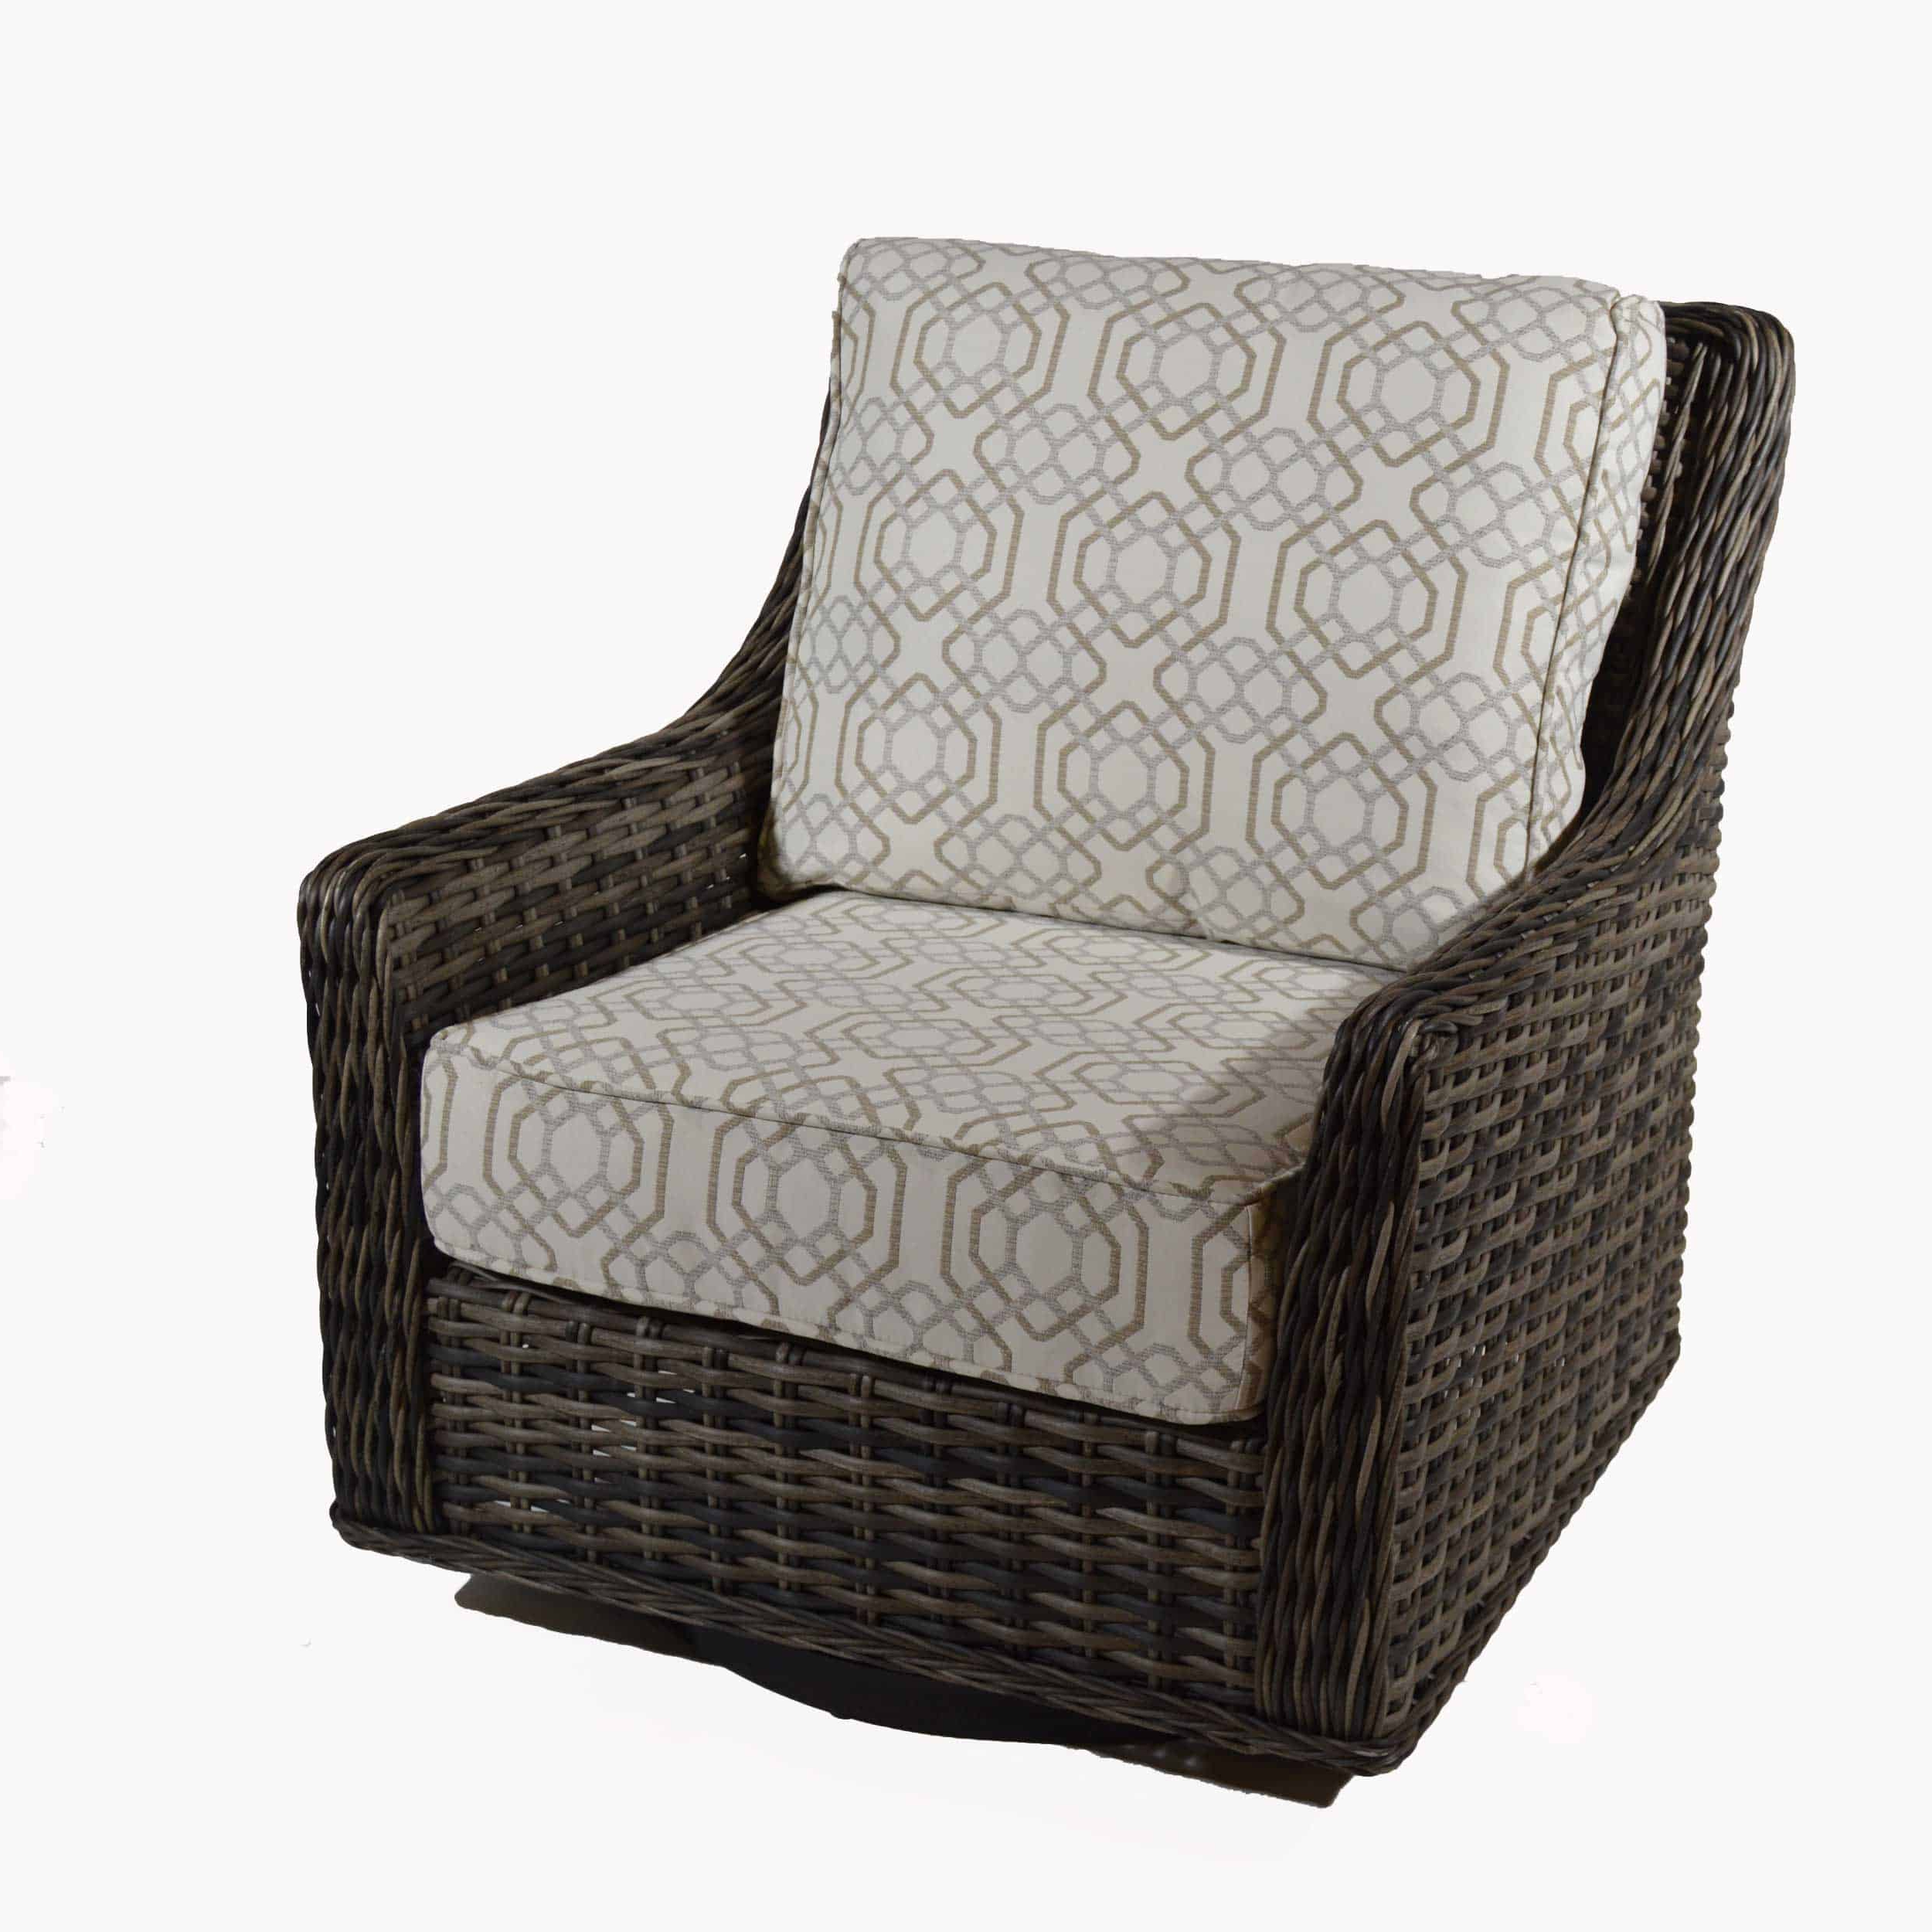 Patio Renaissance Catalina Cushion Woven Highback Swivel Pertaining To 2020 Woven High Back Swivel Chairs (View 3 of 30)